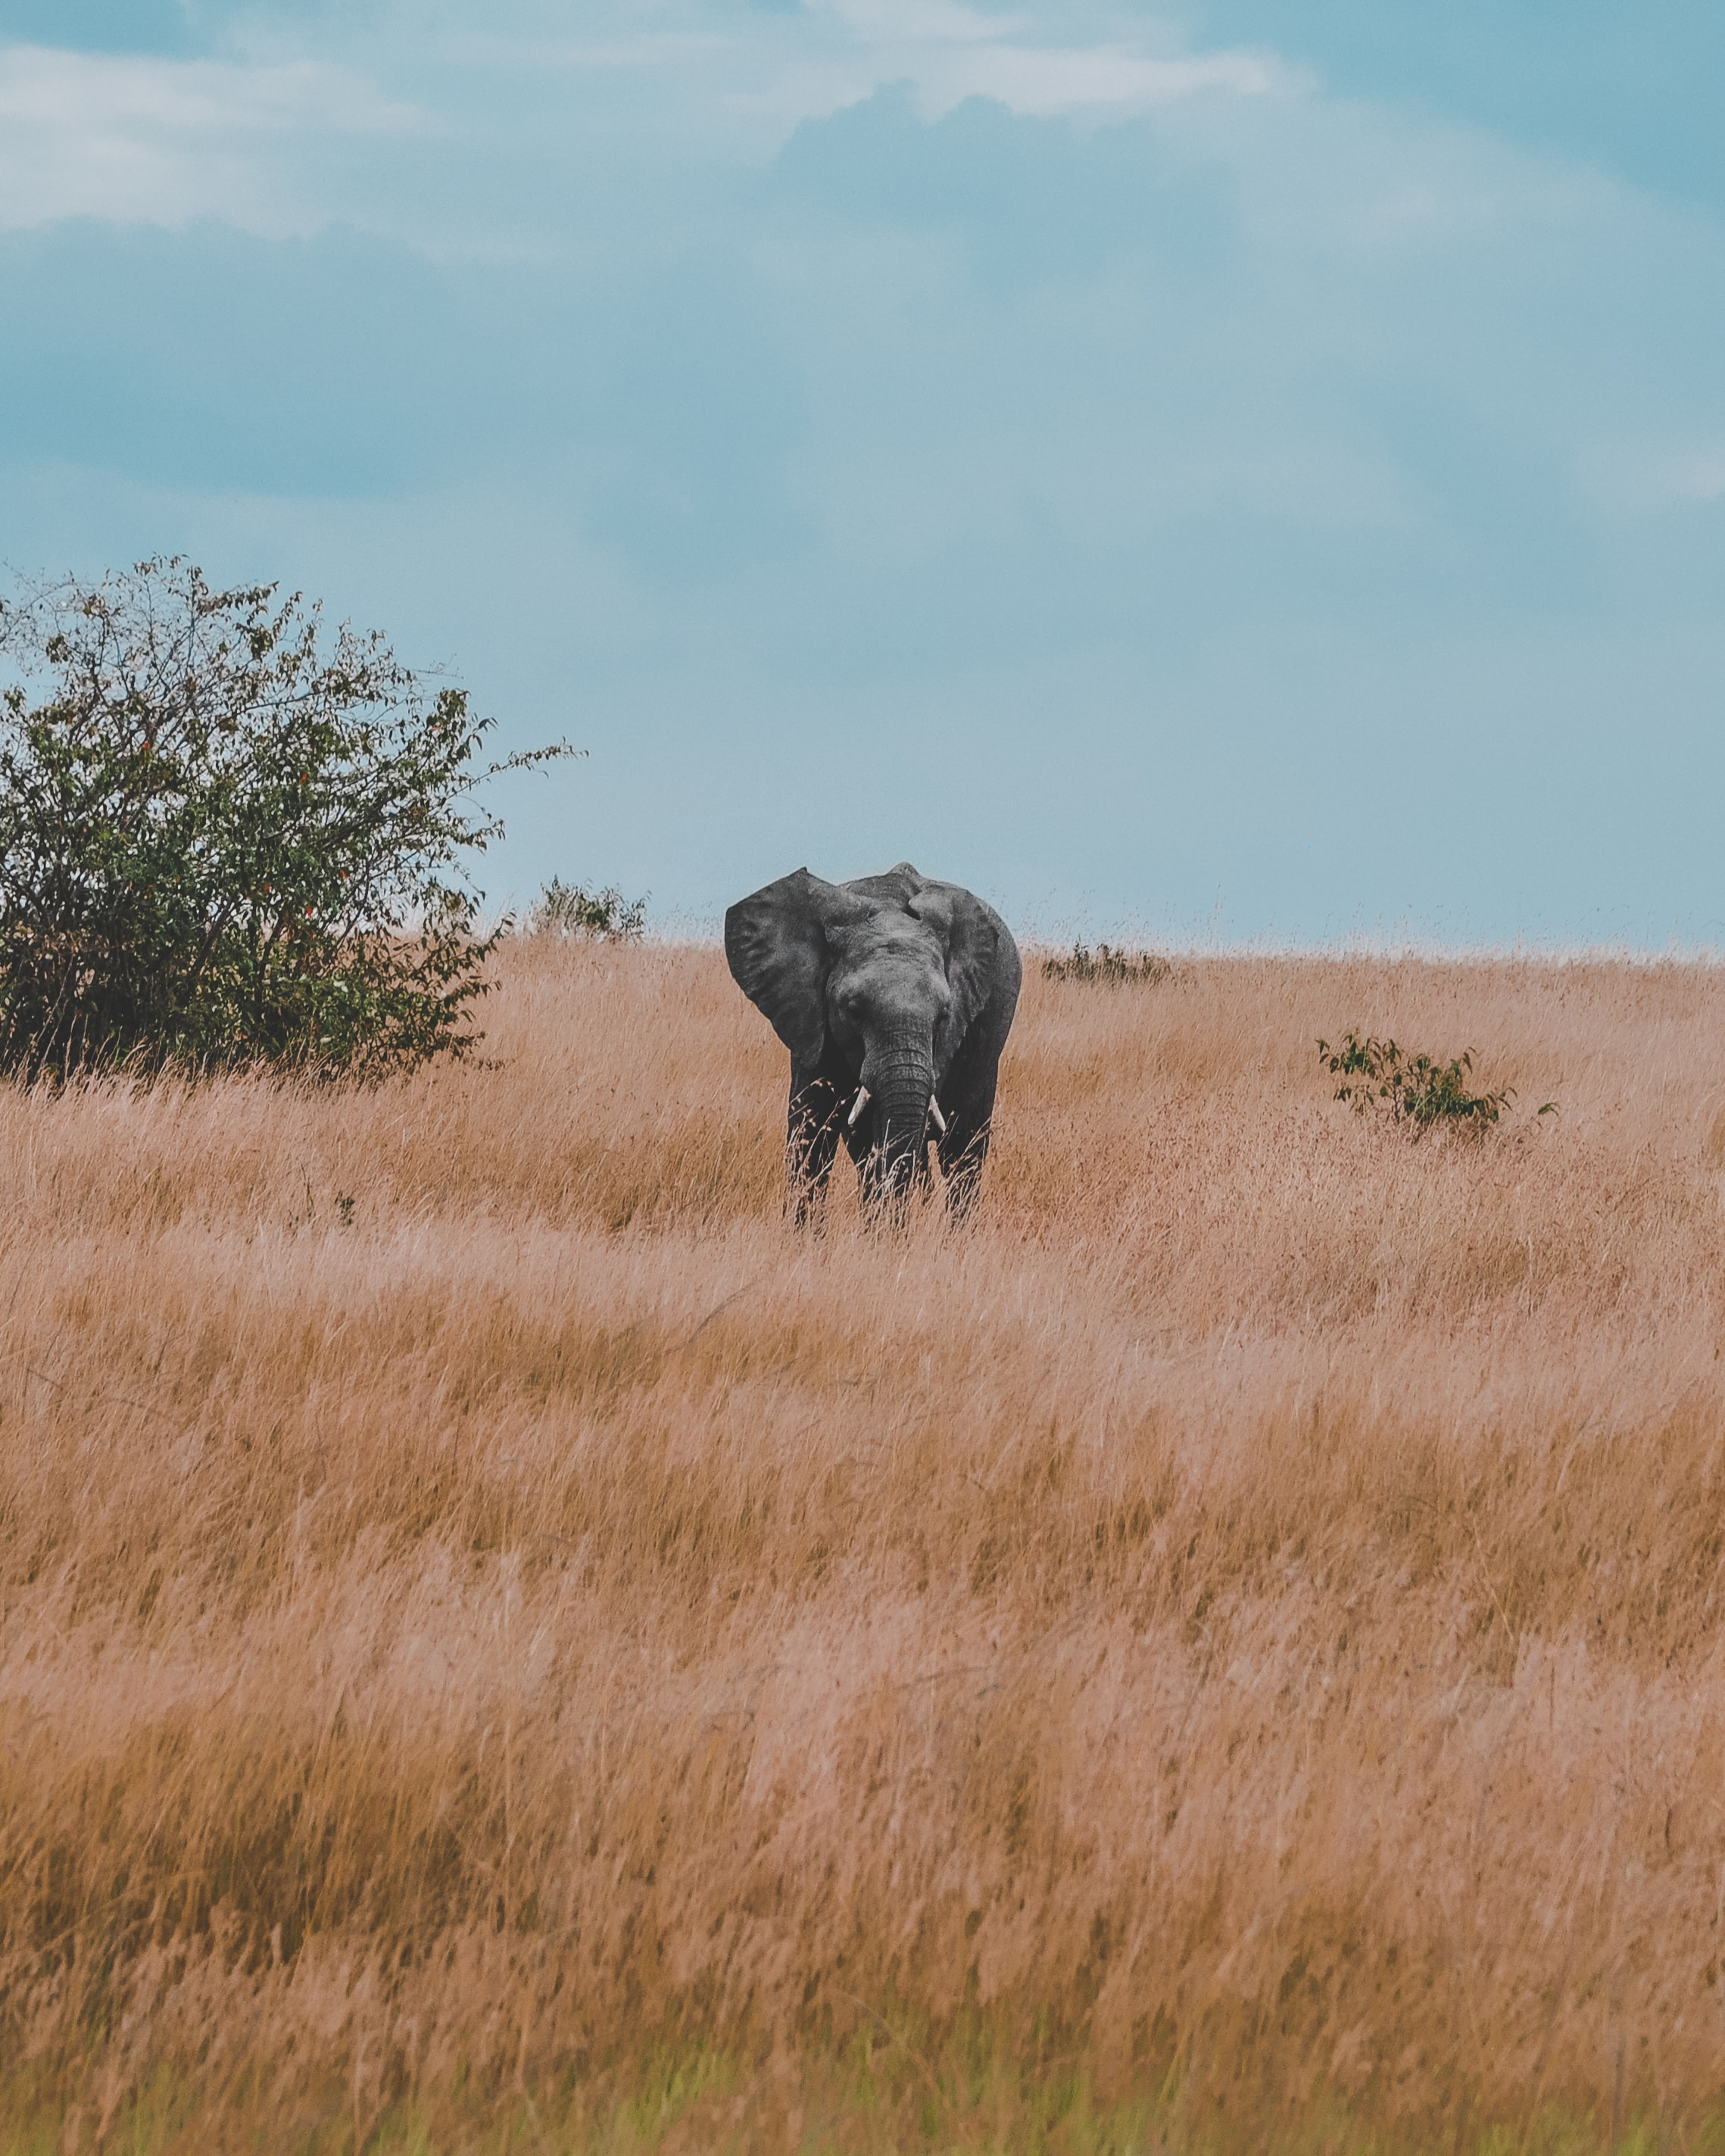 gray elephant standing in withered grass field